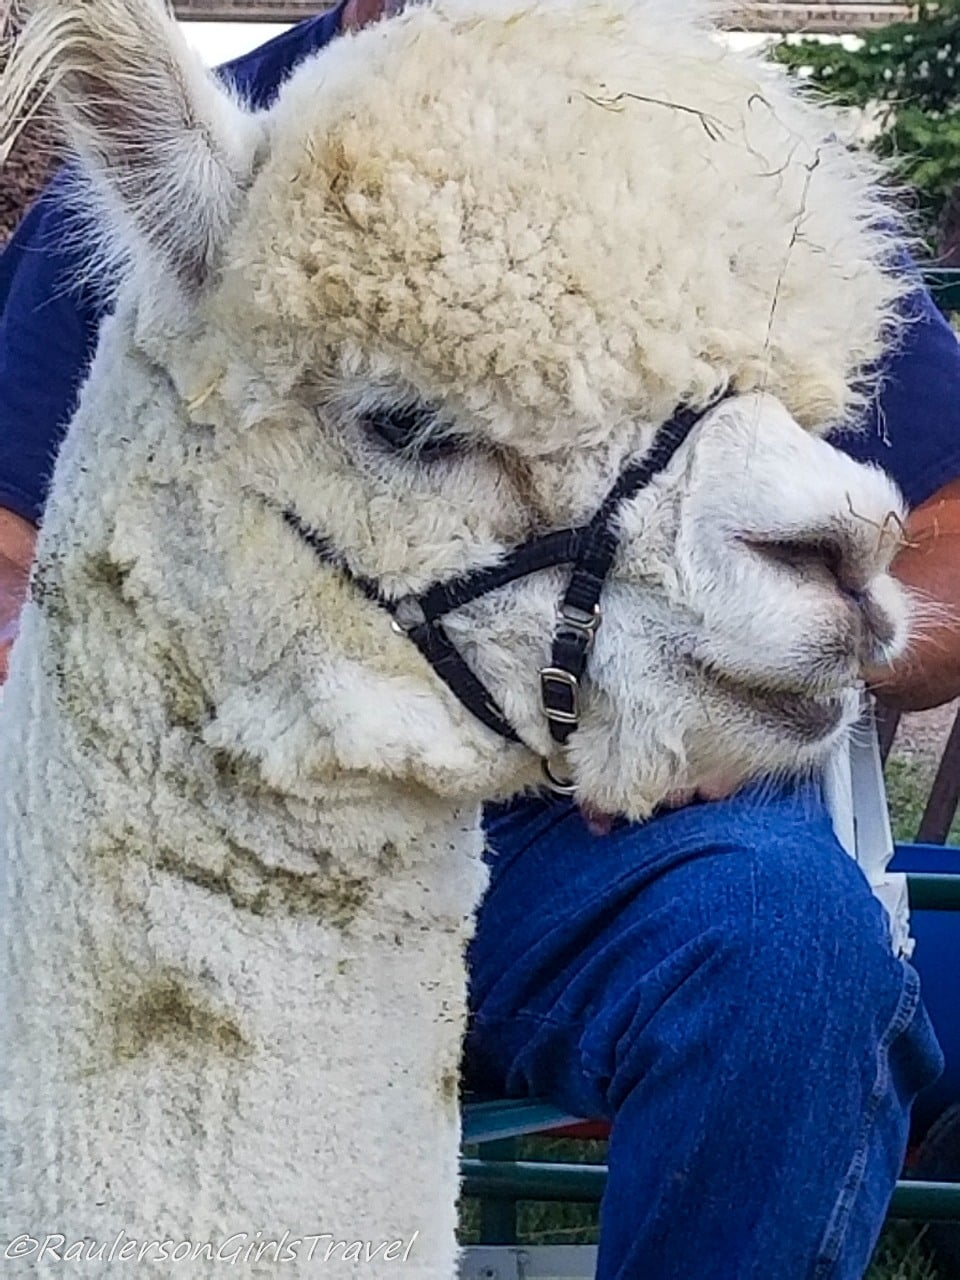 A llama at the Lavender Festival